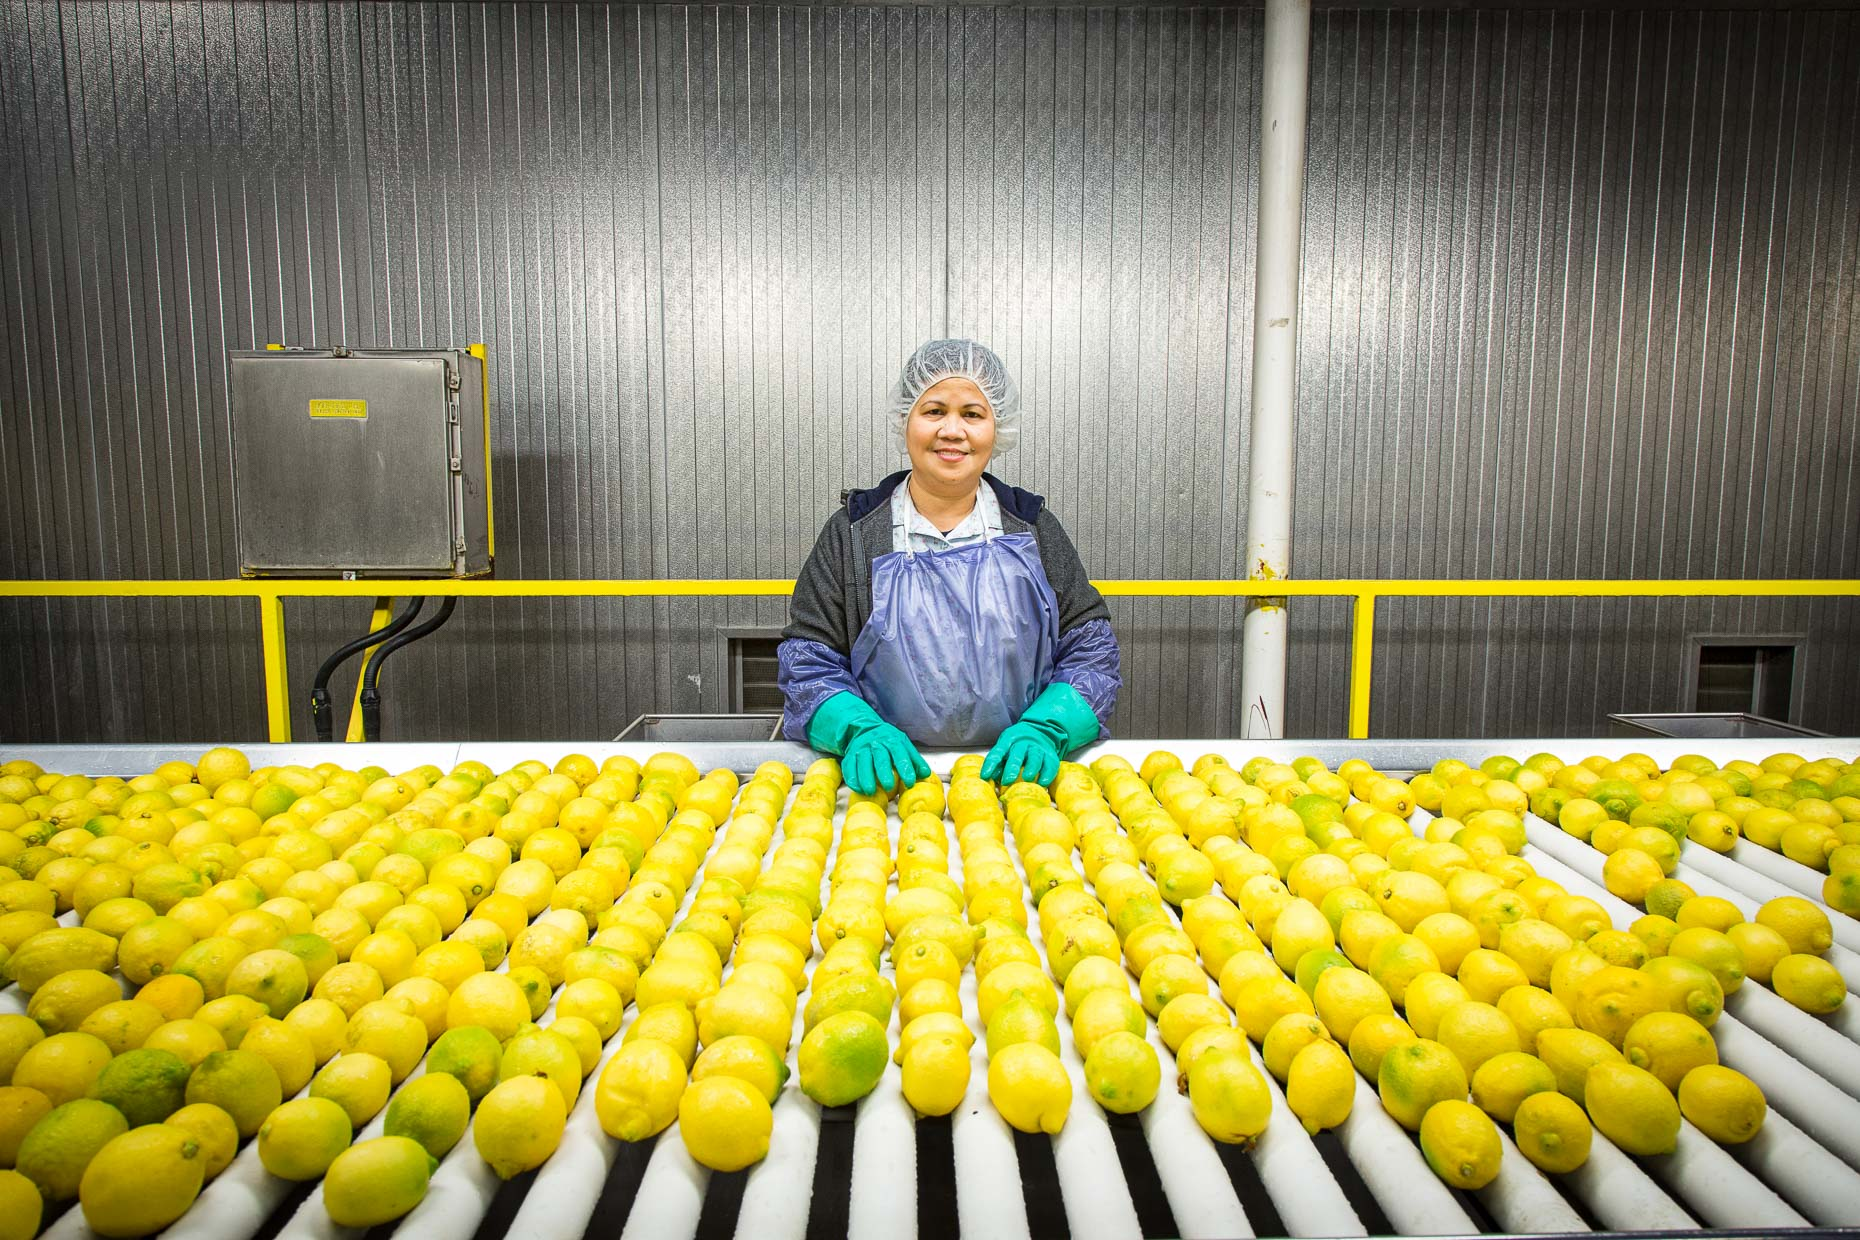 Woman in citrus processing plant sorting lemons on conveyer belt. Industrial, agriculture. David Zaitz Photography.